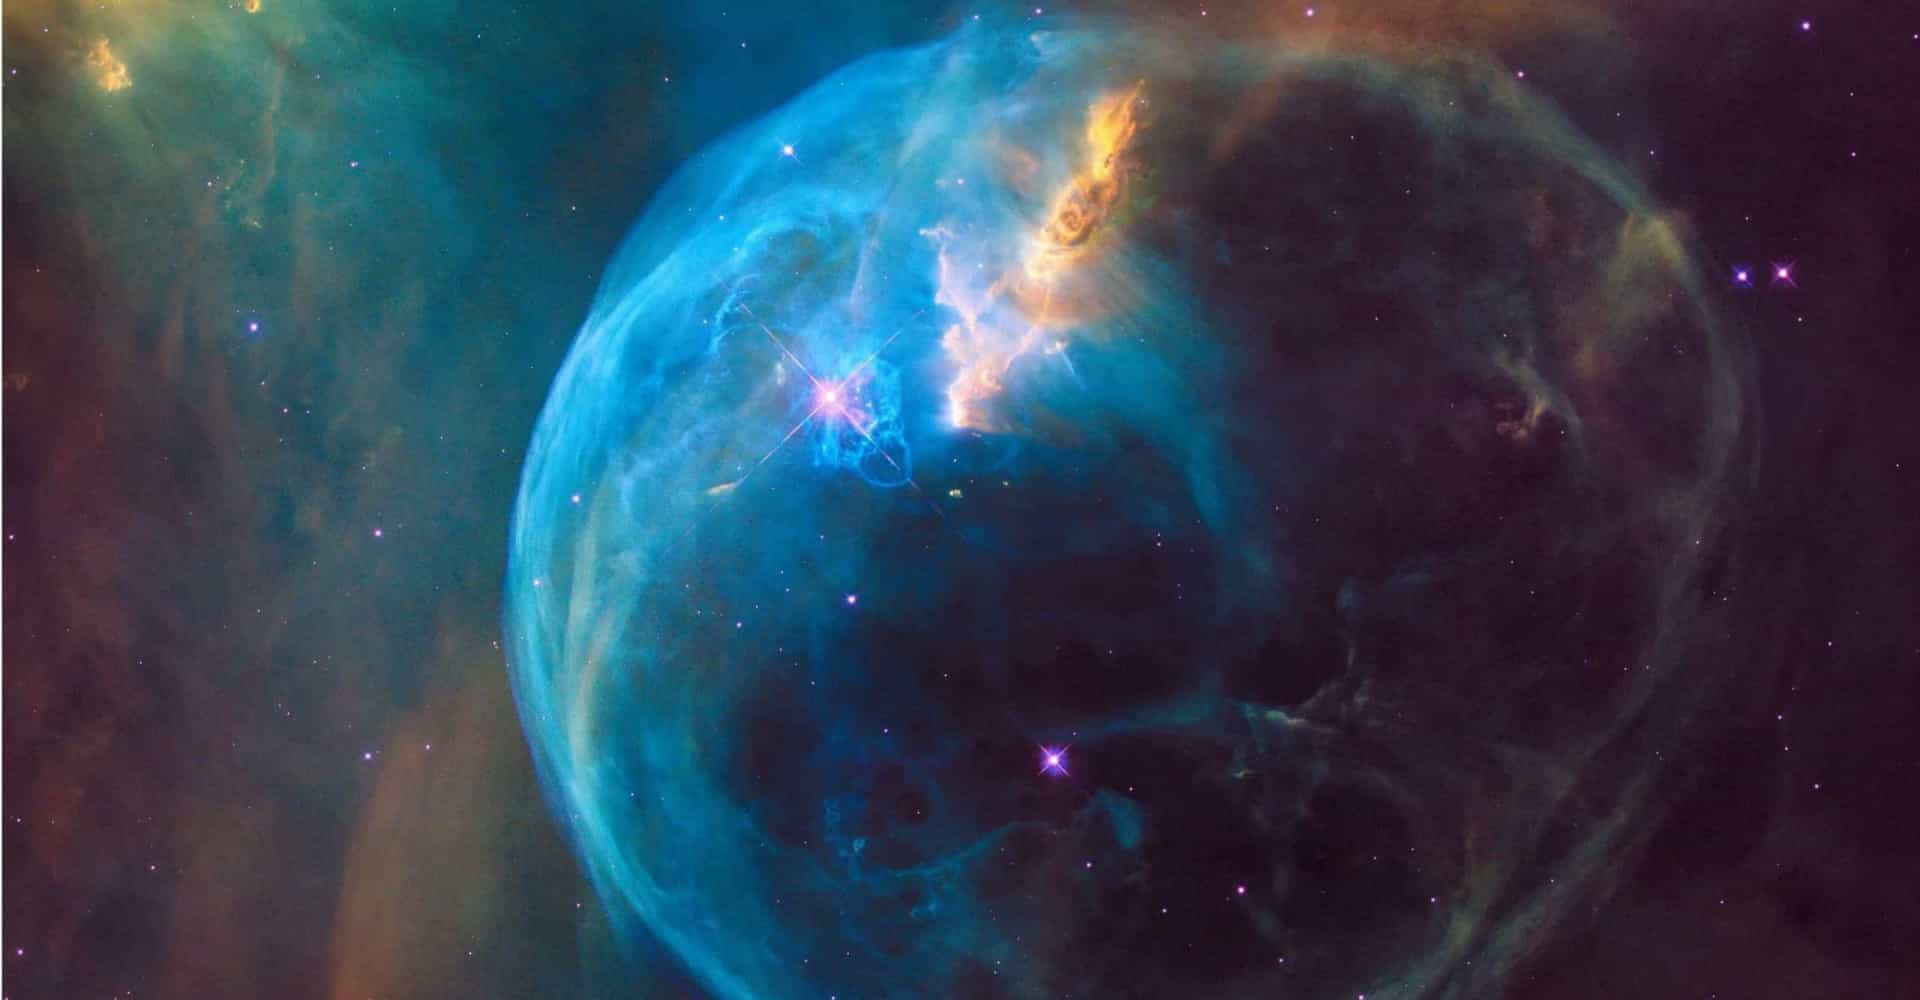 Stellar spectacular: NASA photos that will make you feel small